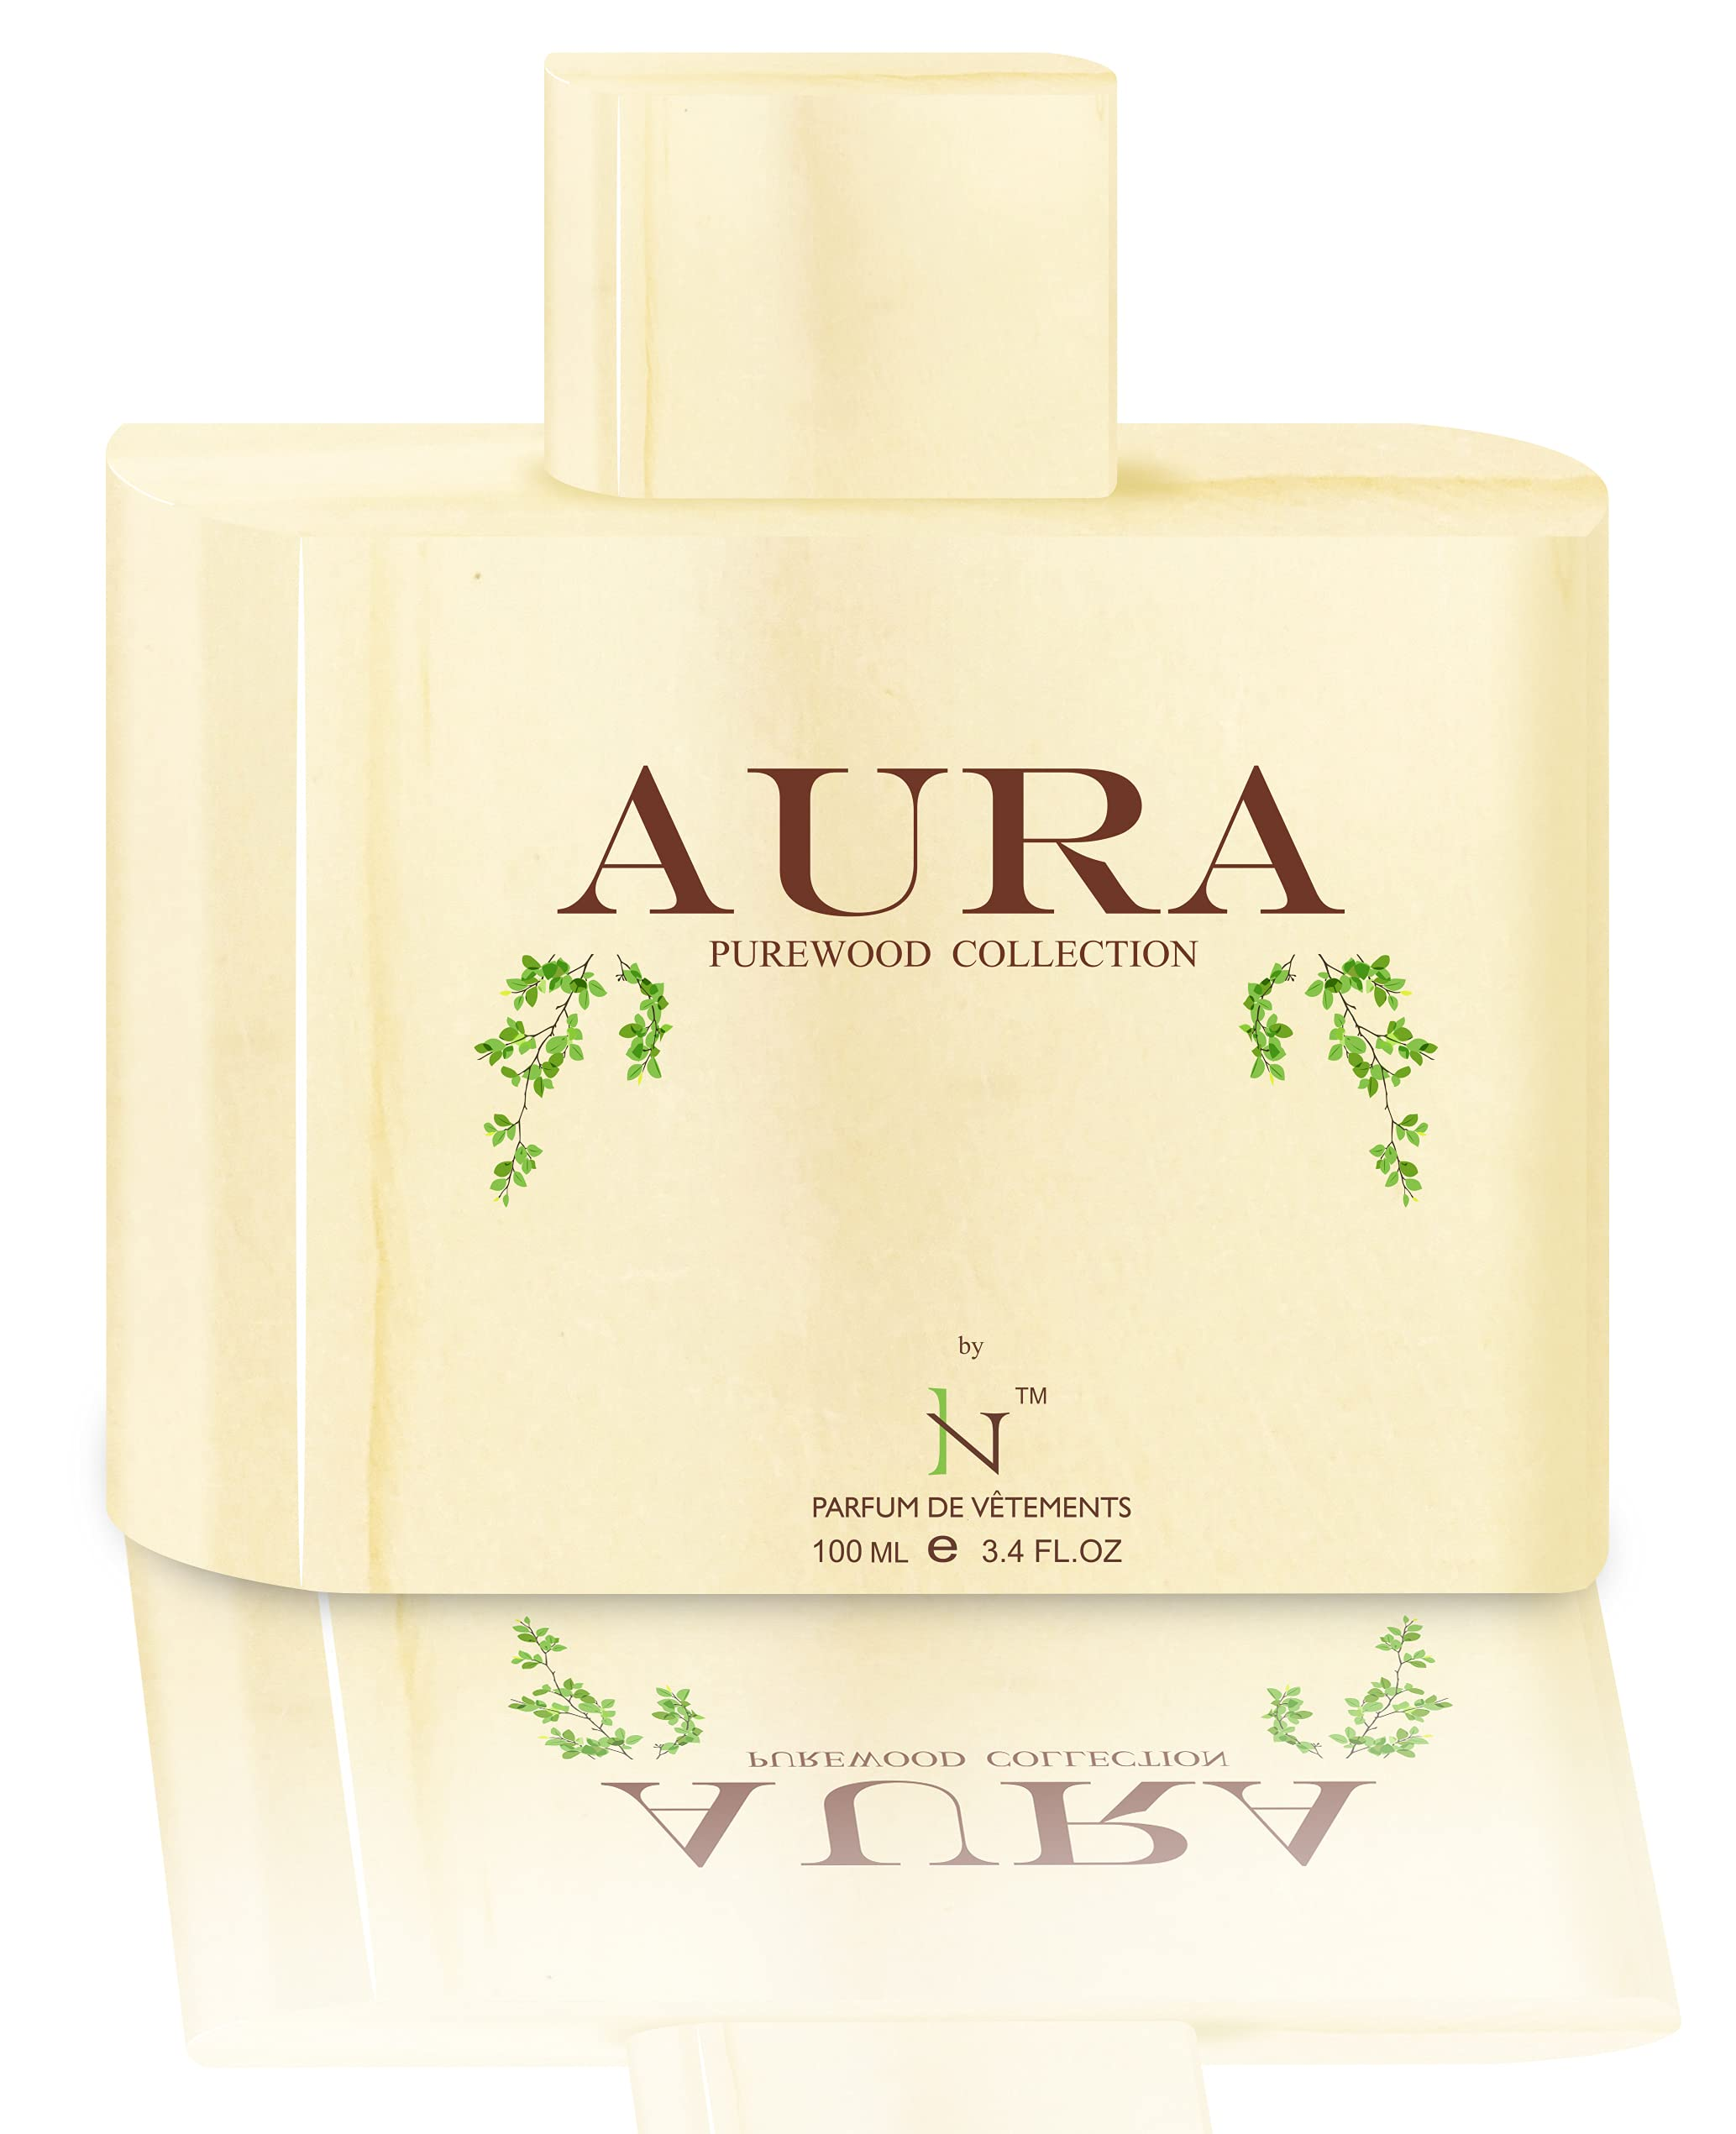 Incense Creations AURA Perfume for Him and Her, 100ml | Premium Strong & Long Lasting Fragrance | Aromatic Woody Spicy